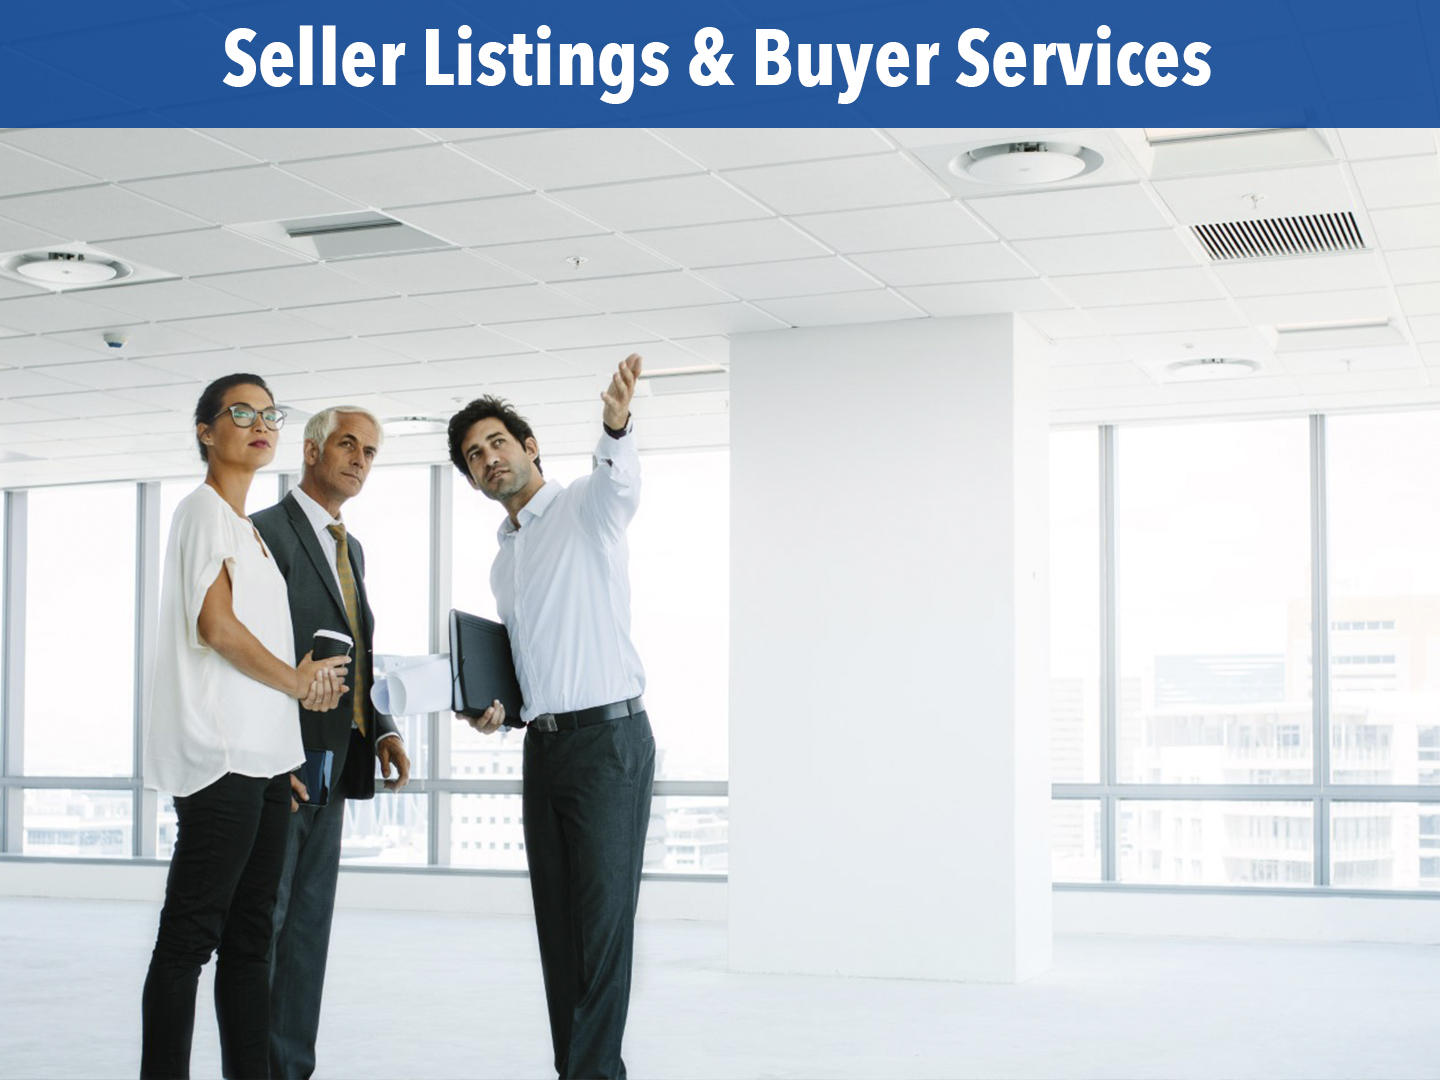 Seller Listing & Buyer Services (1).jpg